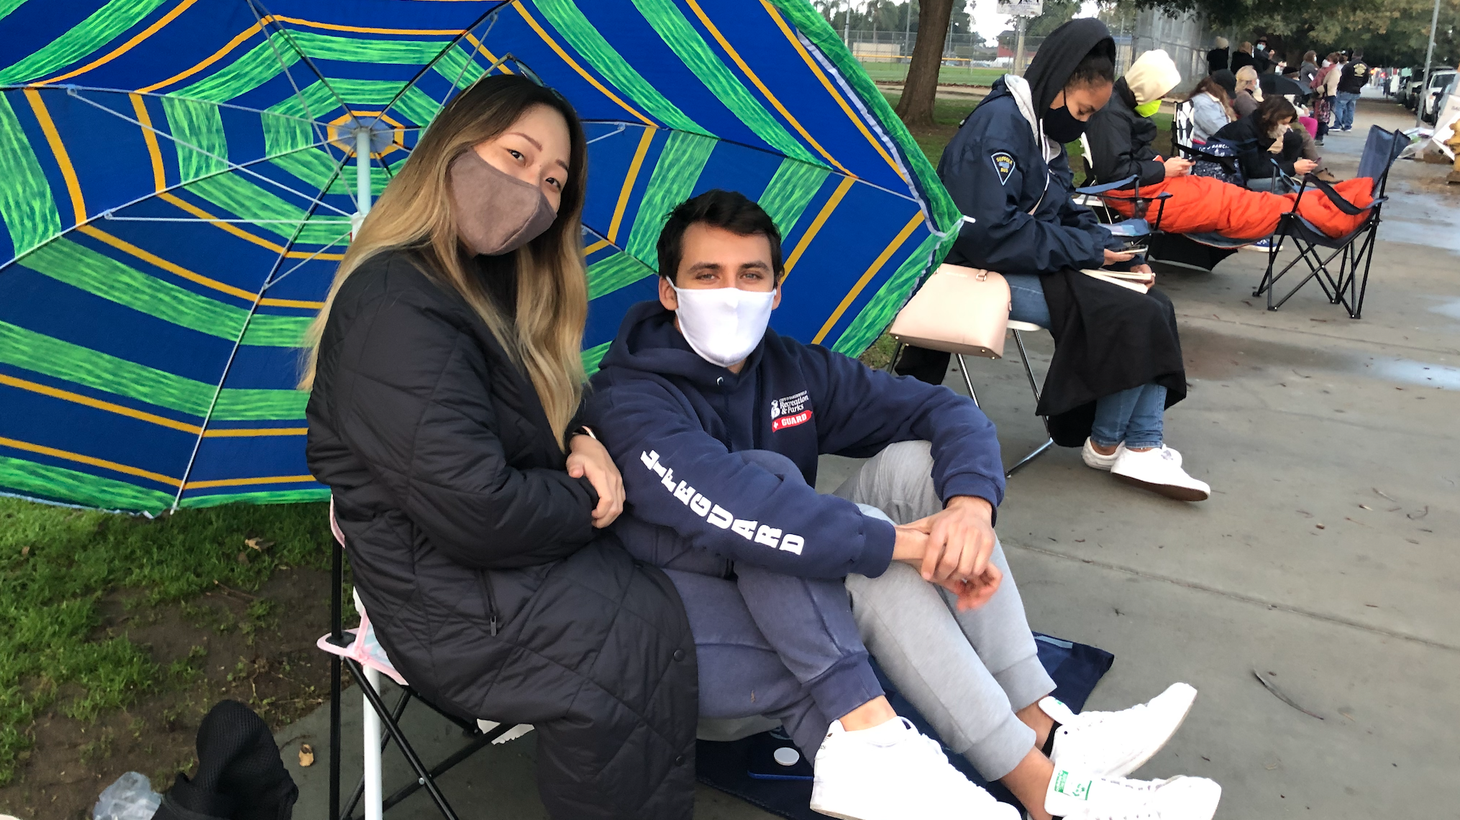 Stella Kim and James Cannon arrived at Kedren Community Health Center at 5 a.m. to potentially get leftover COVID vaccine shots at 4 p.m. Dozens of people were already waiting in front of them.